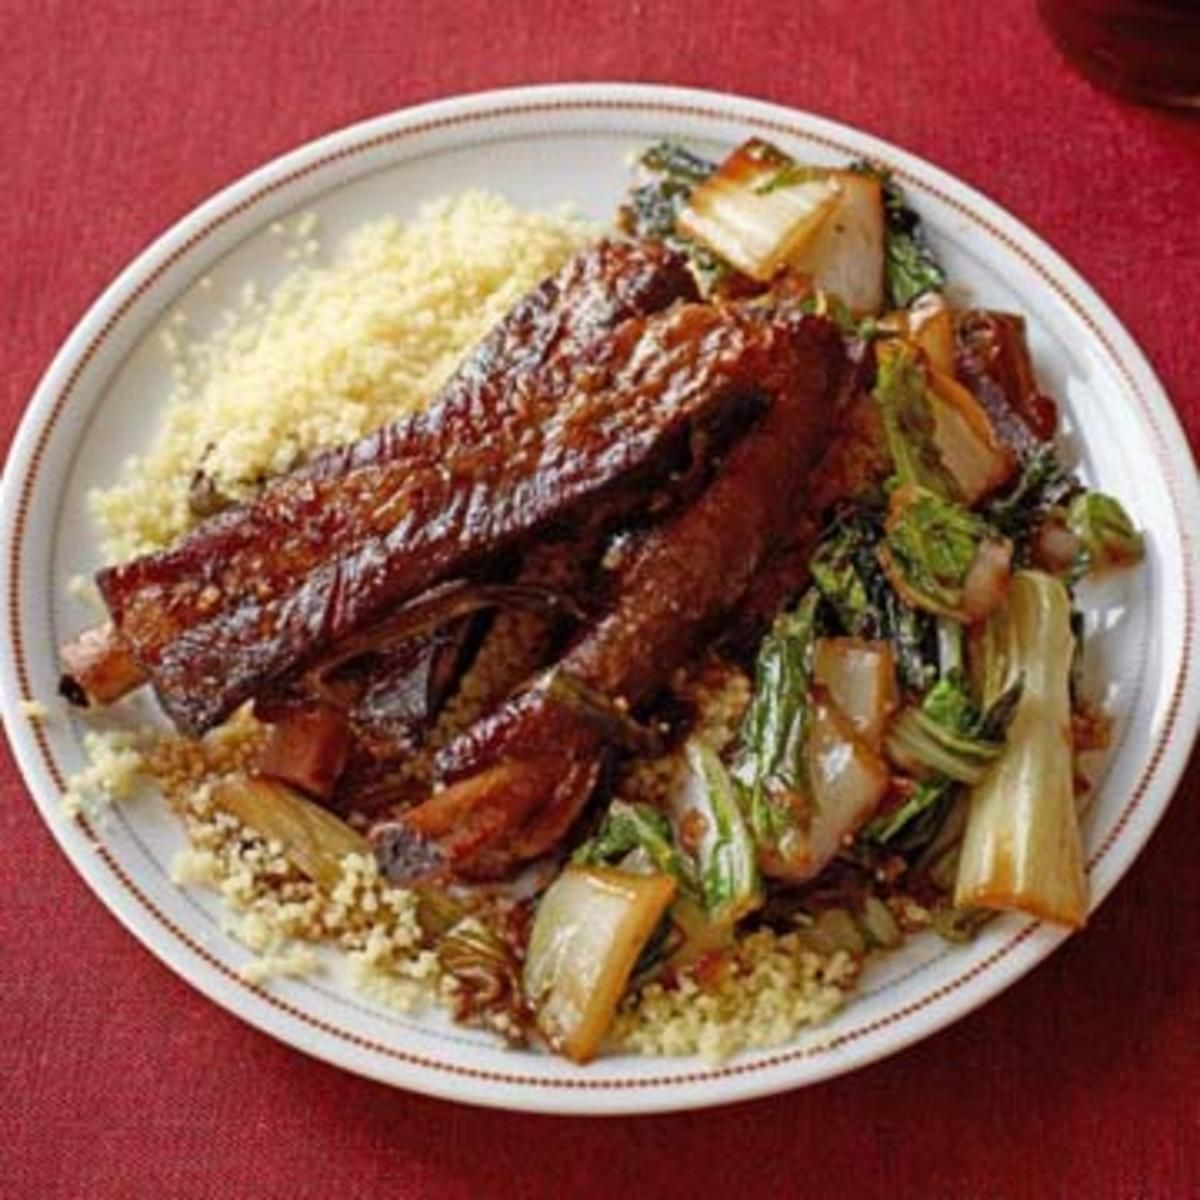 Braised Pork Ribs with Bok Choy